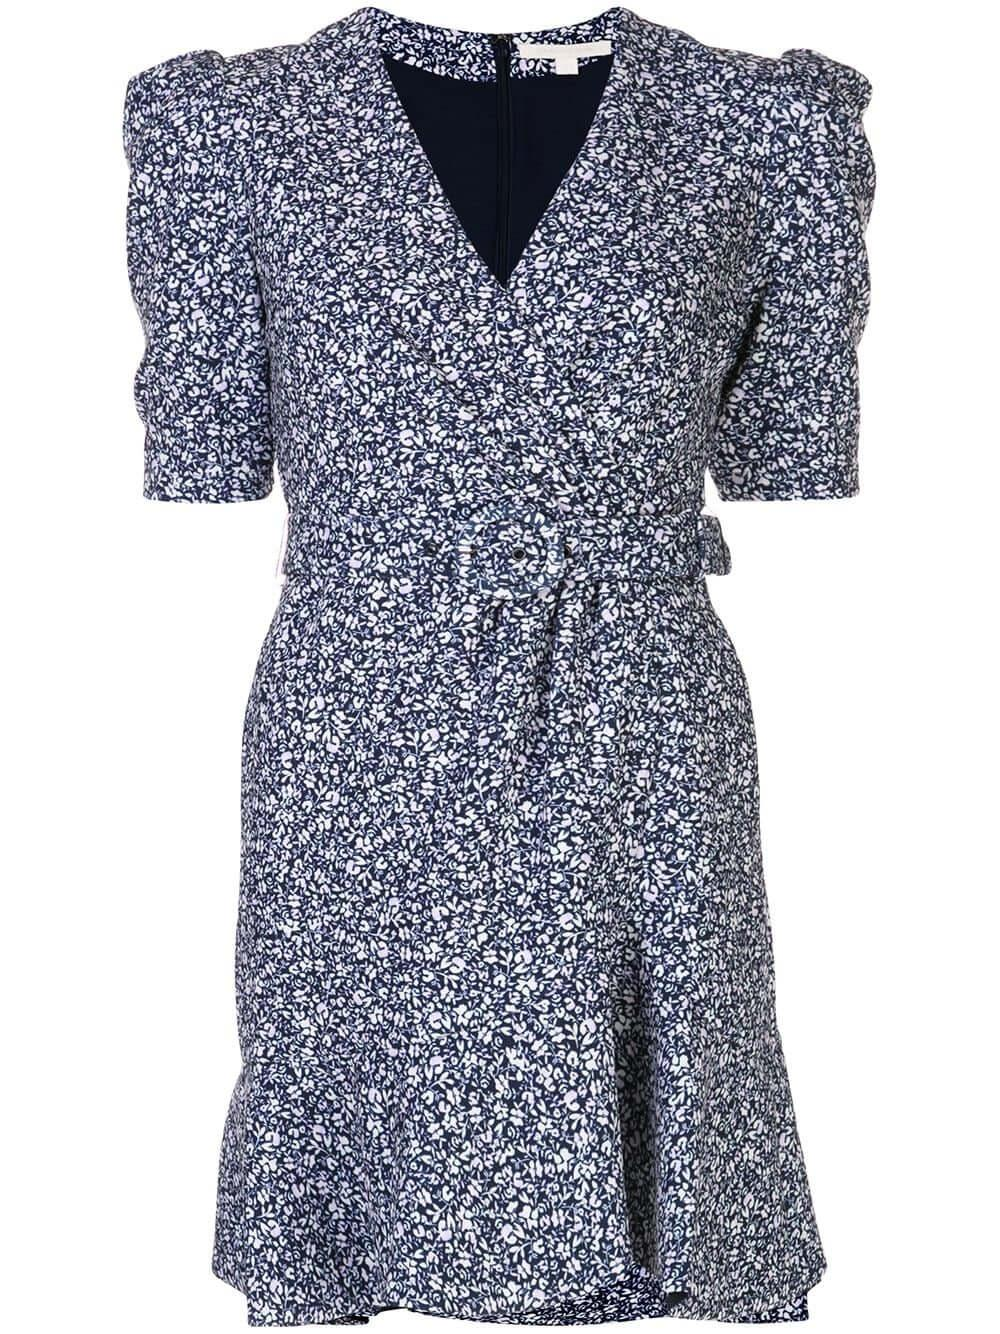 Evelyn Floral Crepe Puff Sleeve Dress Item # 220-1045-C